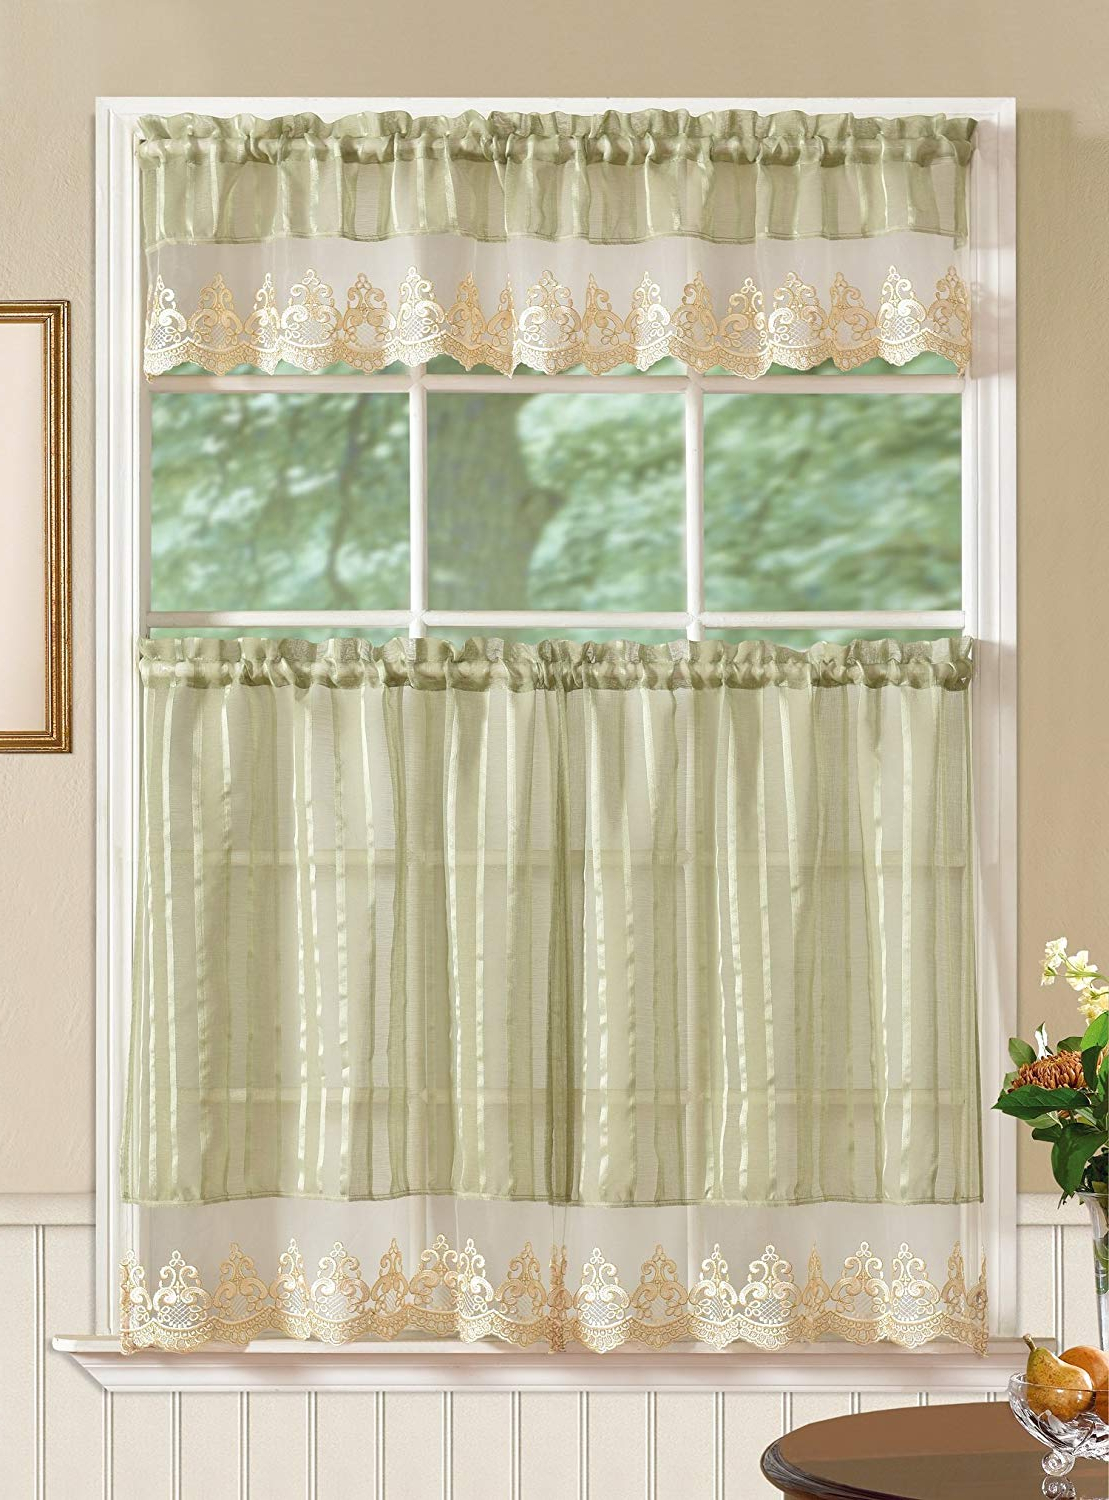 Preferred Top Of The Morning Printed Tailored Cottage Curtain Tier Sets Throughout Rt Designers Collection Tier And Valance Bella Tier & Valance Kitchen Curtain Set, Sage (View 20 of 20)